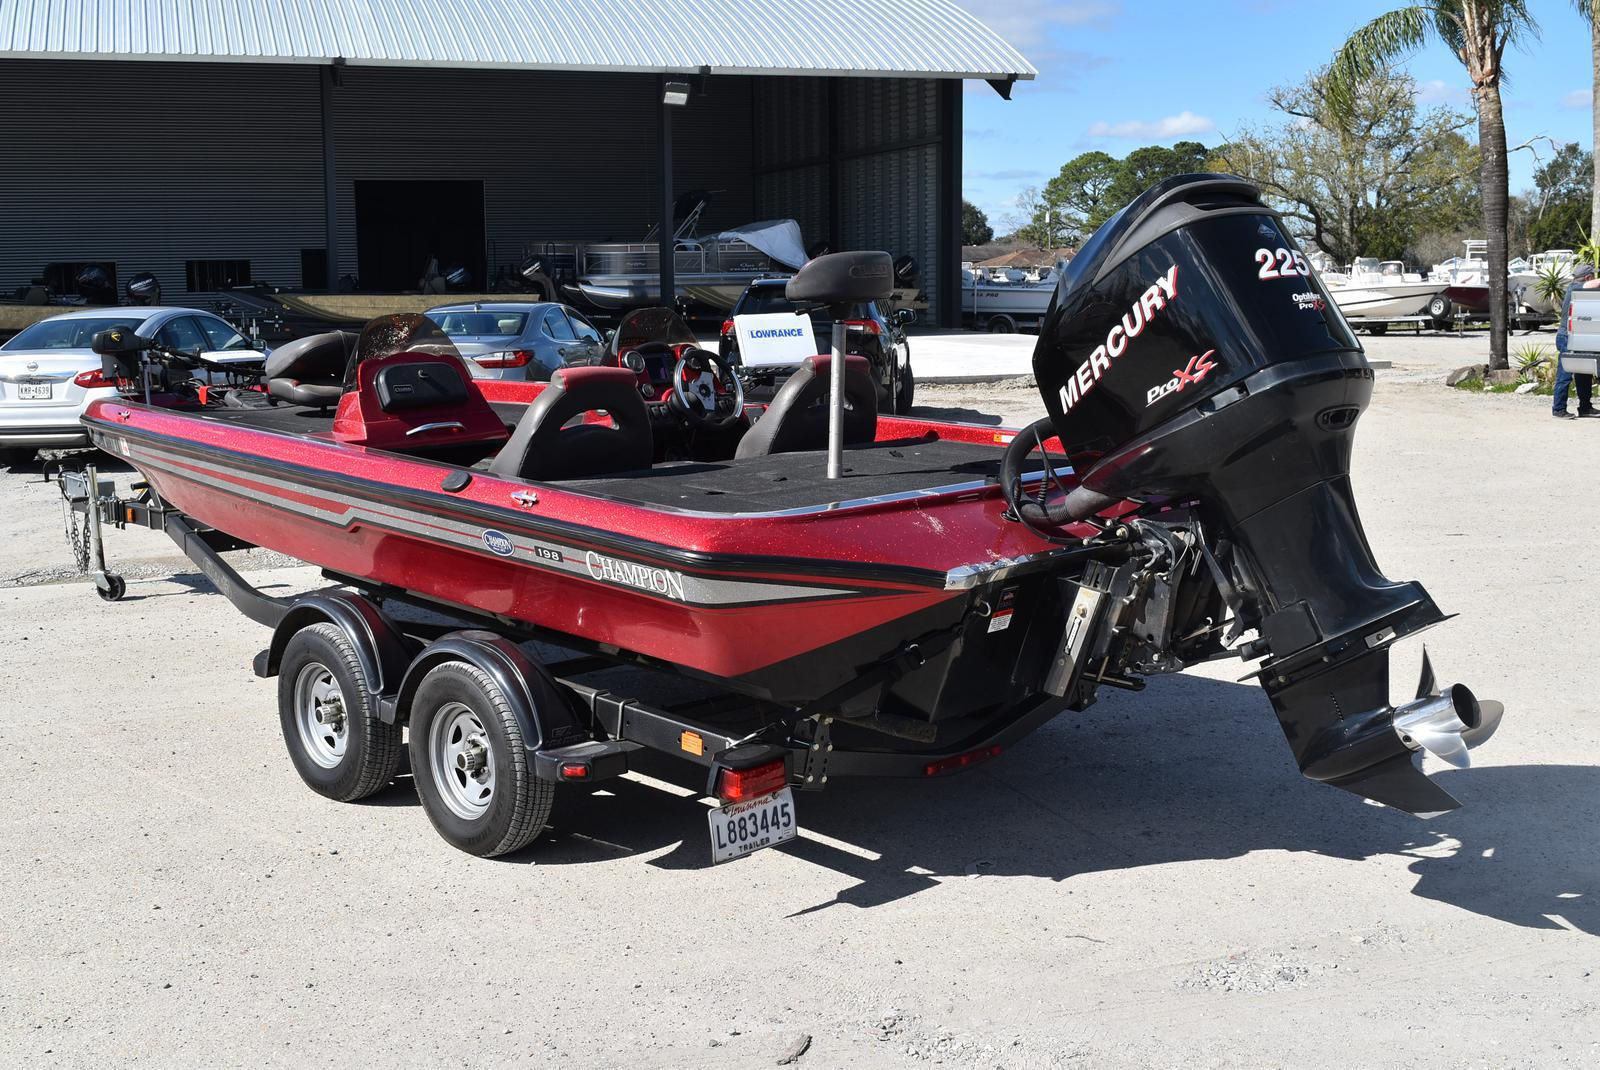 2006 Champion boat for sale, model of the boat is 198 DCX ELITE & Image # 16 of 20